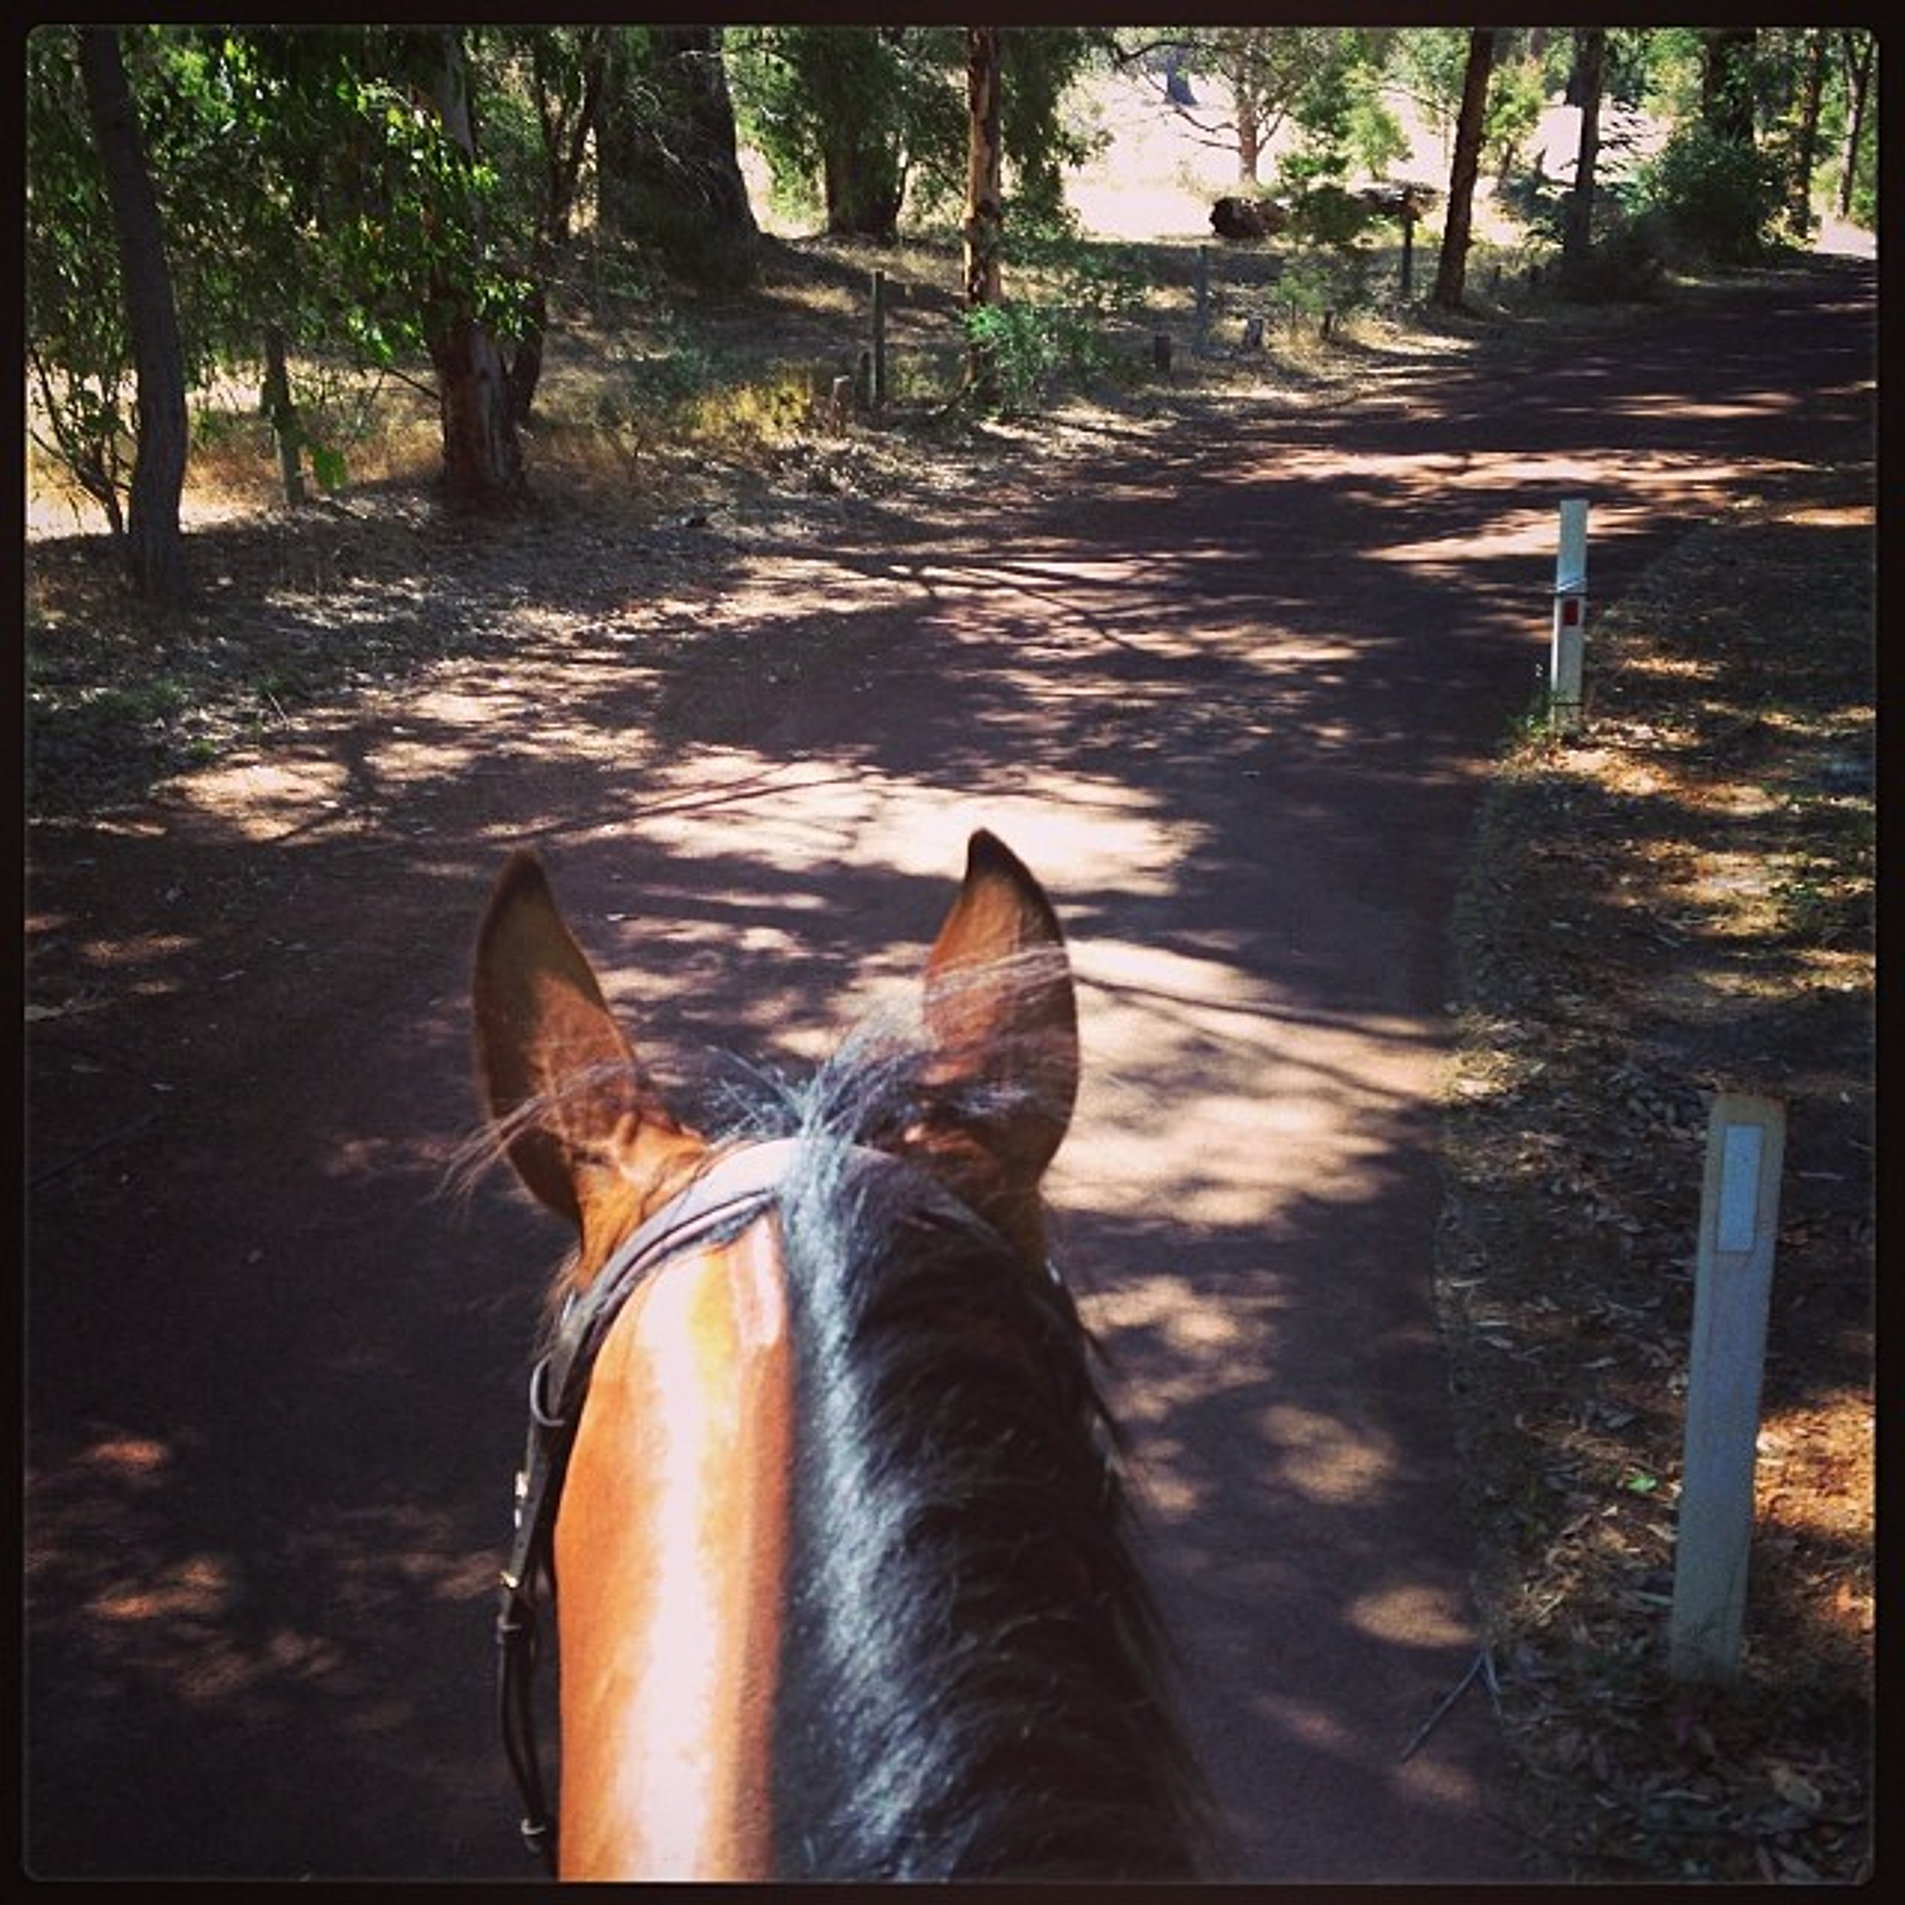 Summer roads#dunsborough equine lodge#riding#love#summer